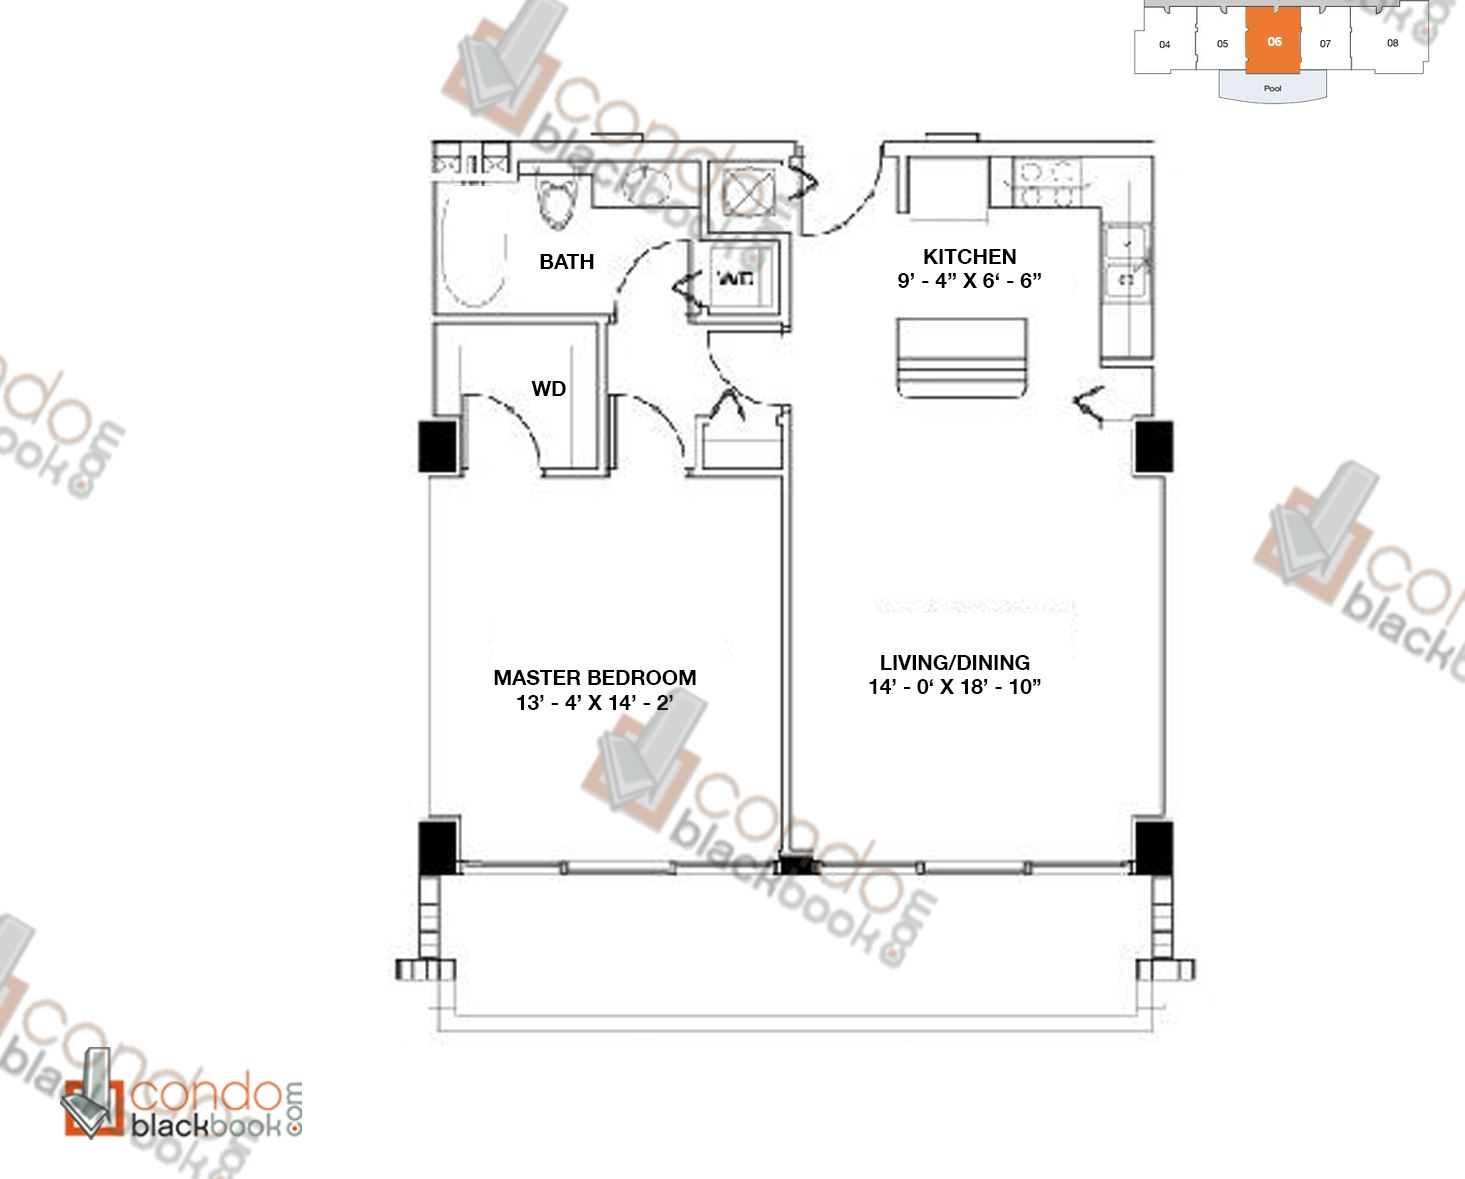 Floor plan for Moon Bay Edgewater Miami, model F, line 06, 1/1 bedrooms, 762 sq ft